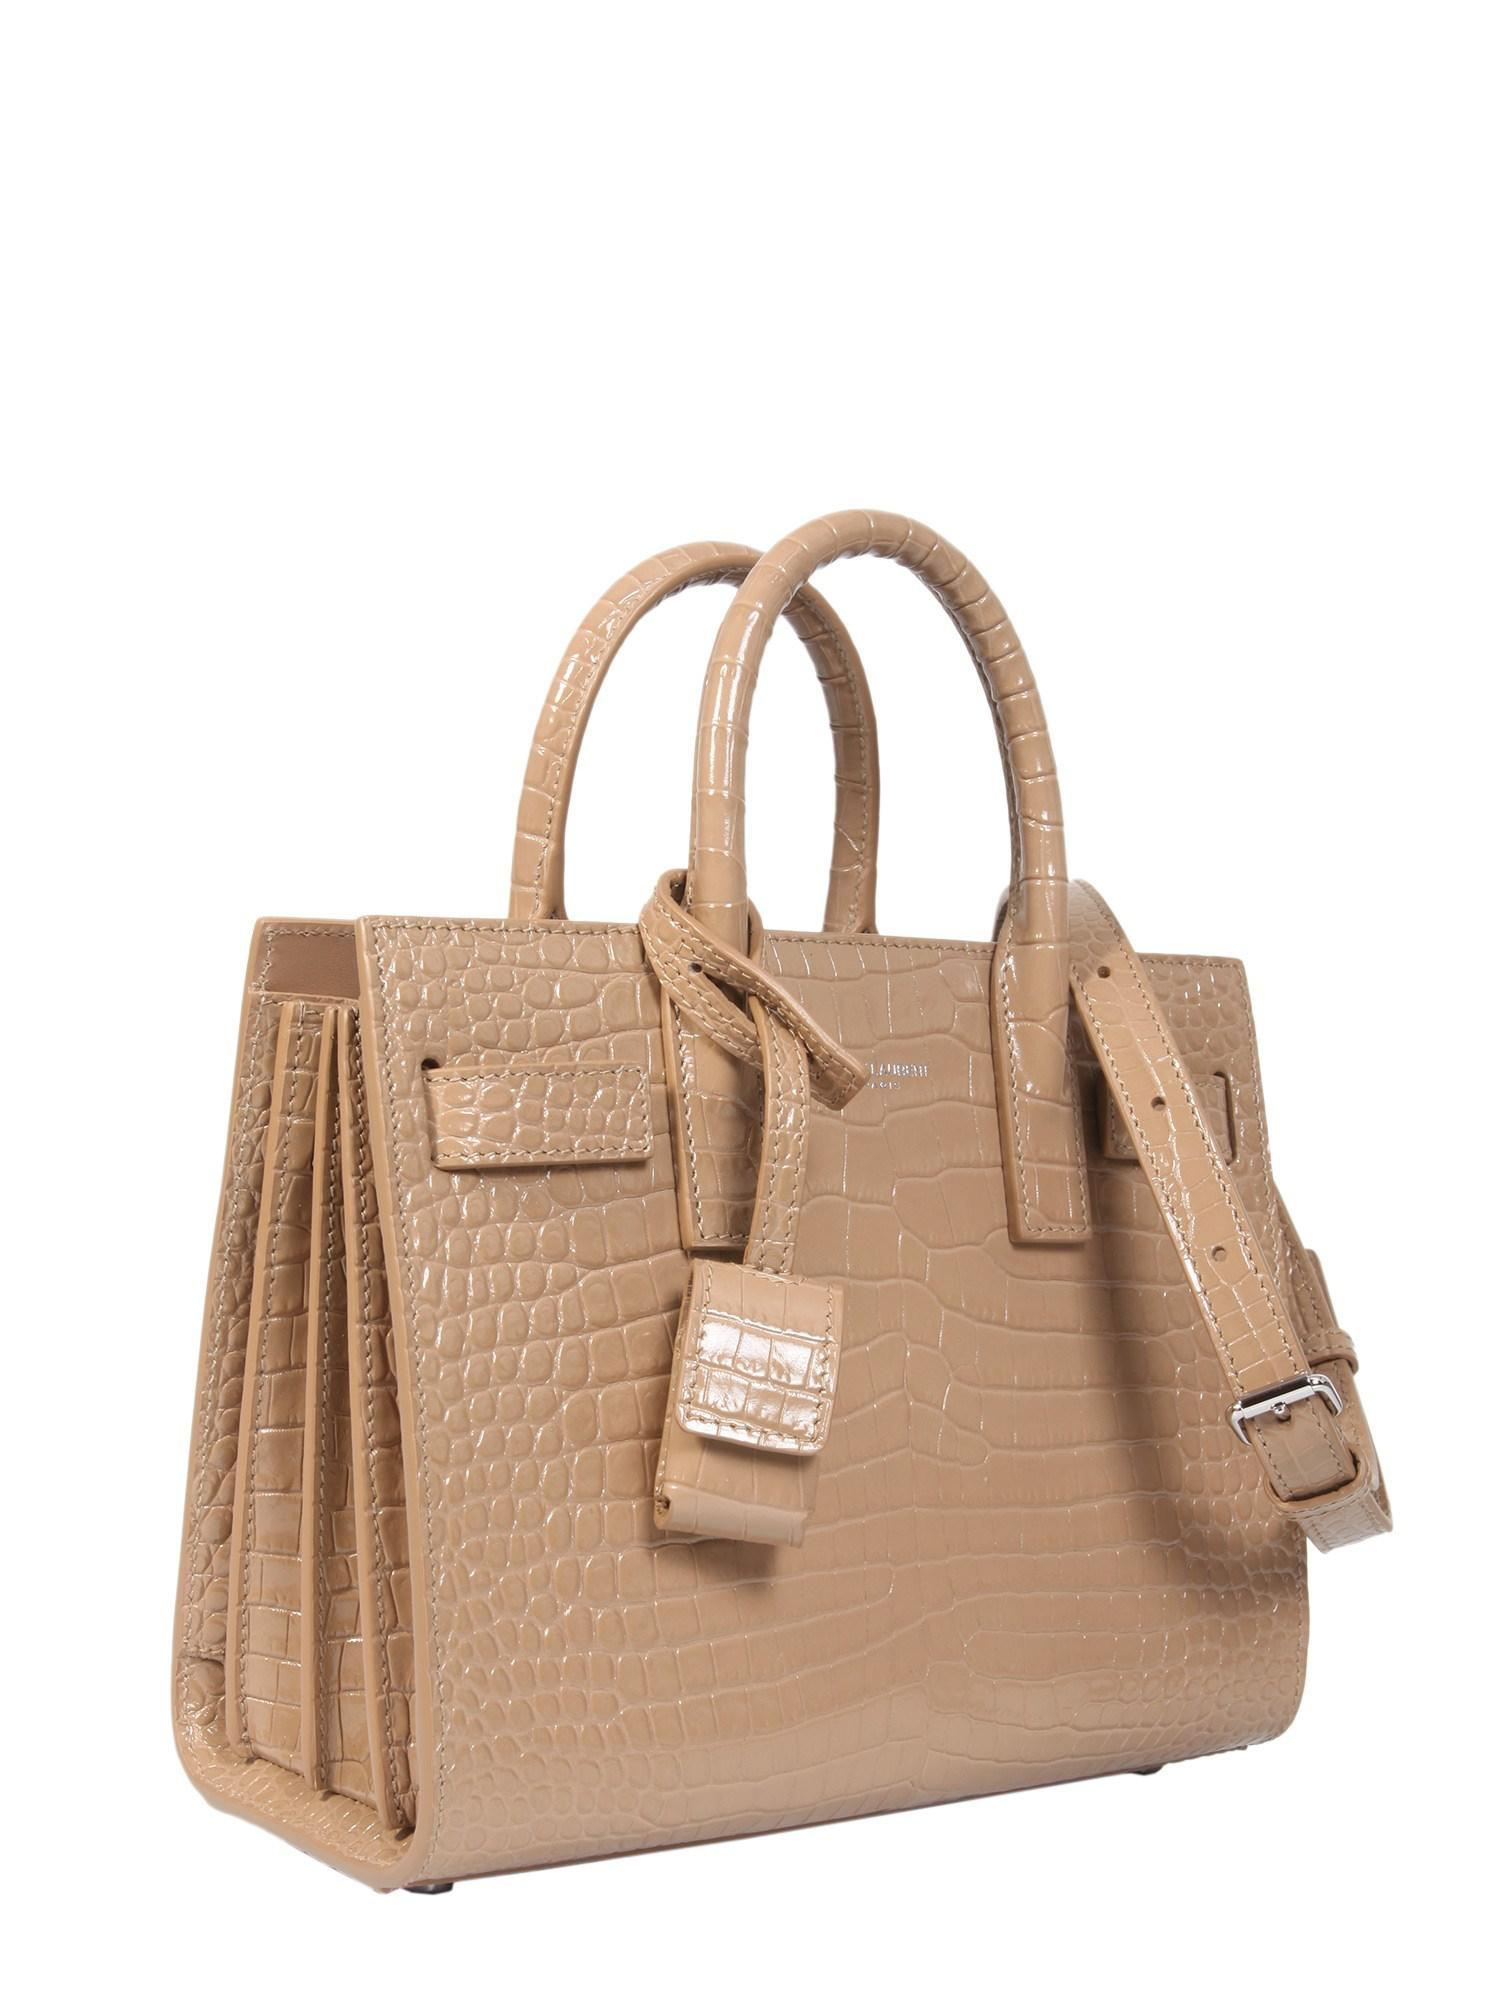 0c23414002 Gallery. Previously sold at  Eleonora Bonucci · Women s Saint Laurent Sac  De Jour ...